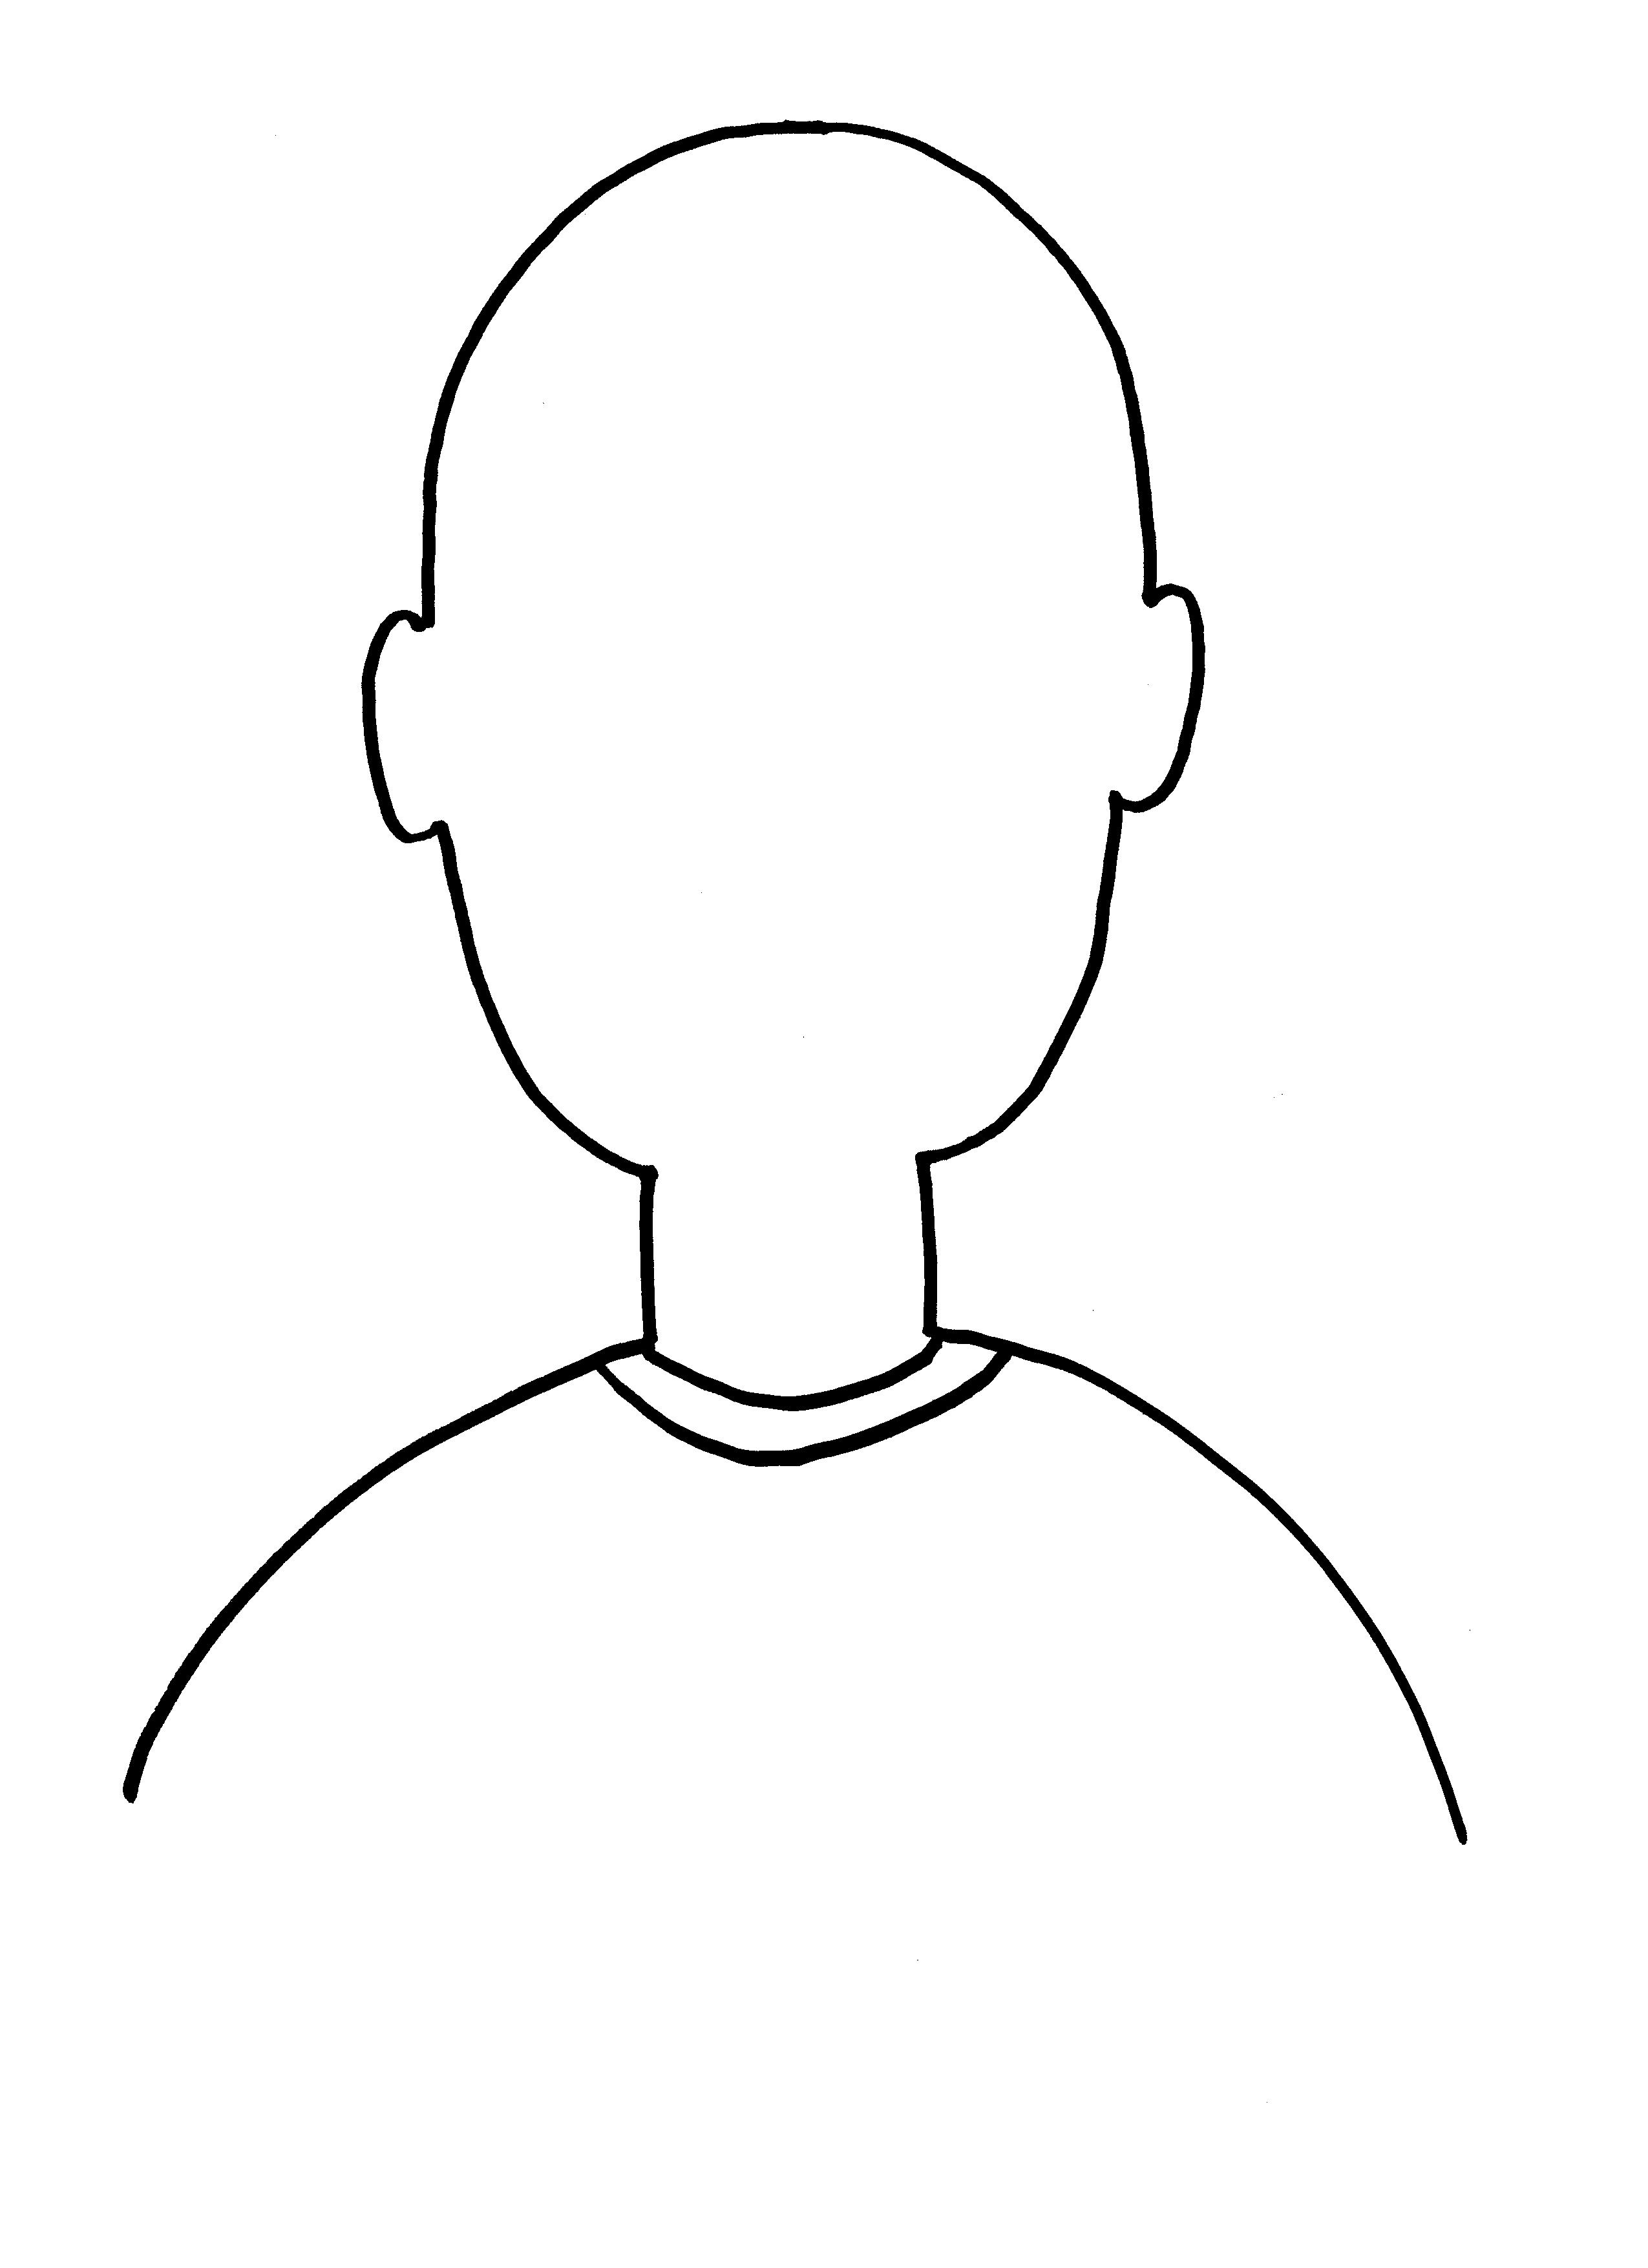 Blank head clipart banner royalty free download Free Blank Person Template, Download Free Clip Art, Free Clip Art on ... banner royalty free download